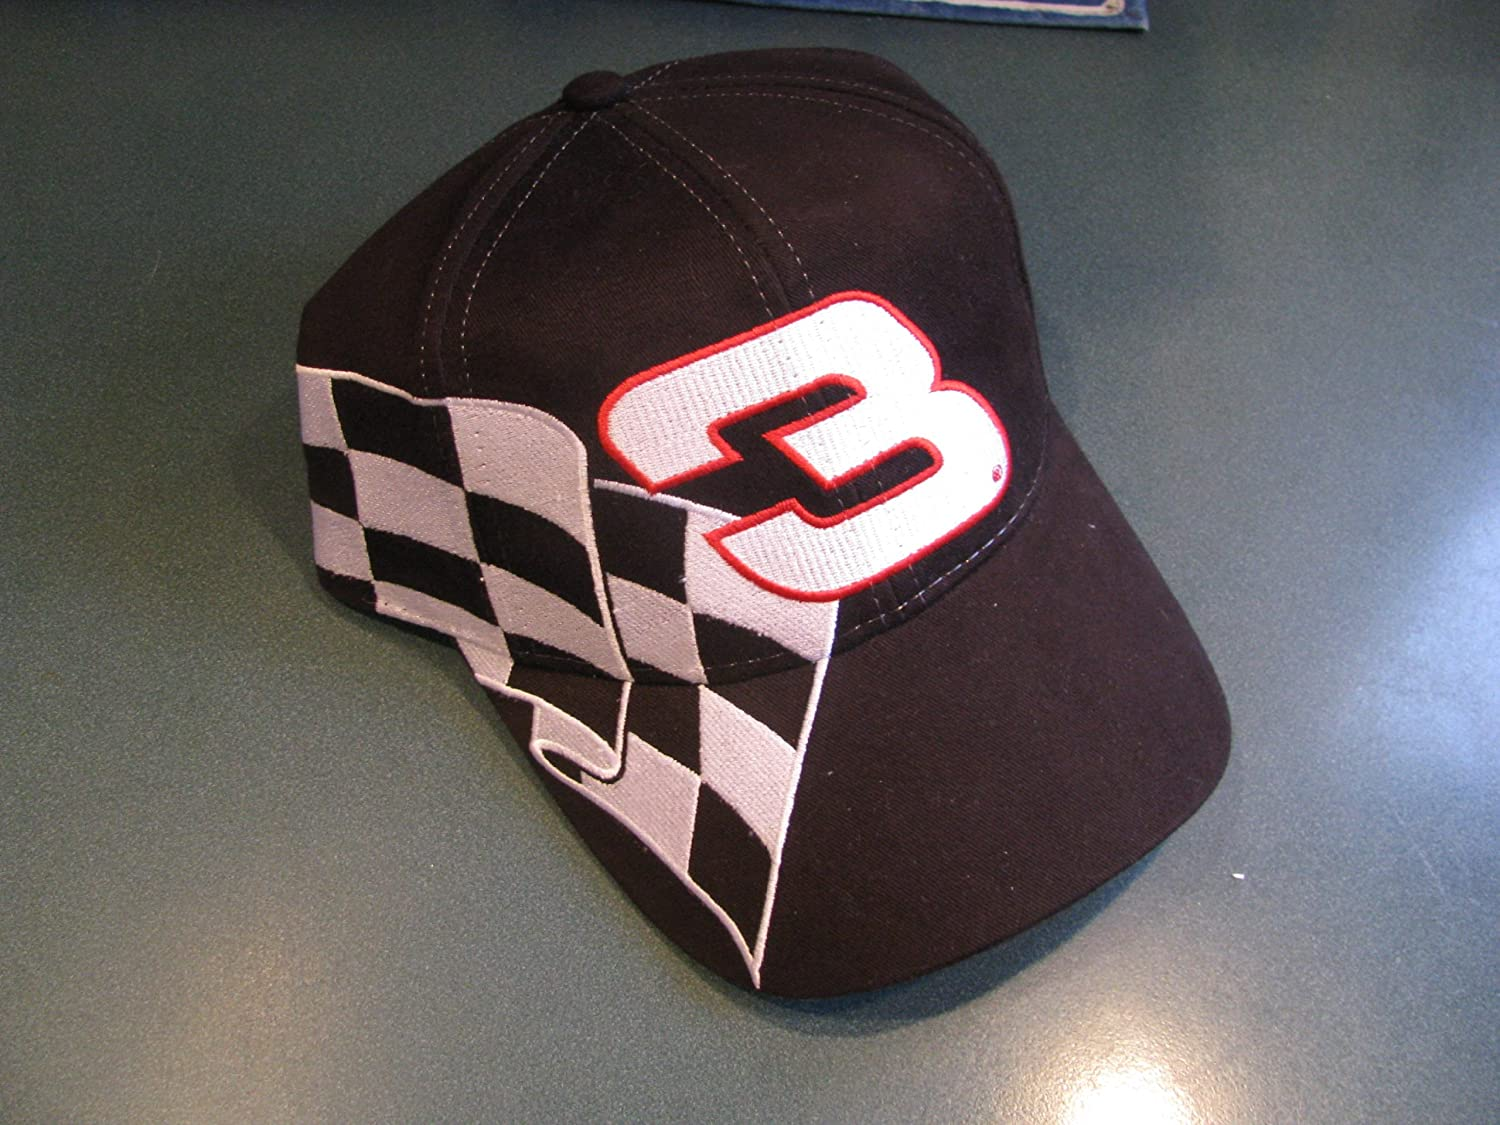 Dale Earnhardt Sr #3 Black With Red White /& Silver Swirl Streaming Accents Goodwrench Service Plus Hat Cap One Size Fits Most OSFM Chase Authentics With Plastic Snapback Strap